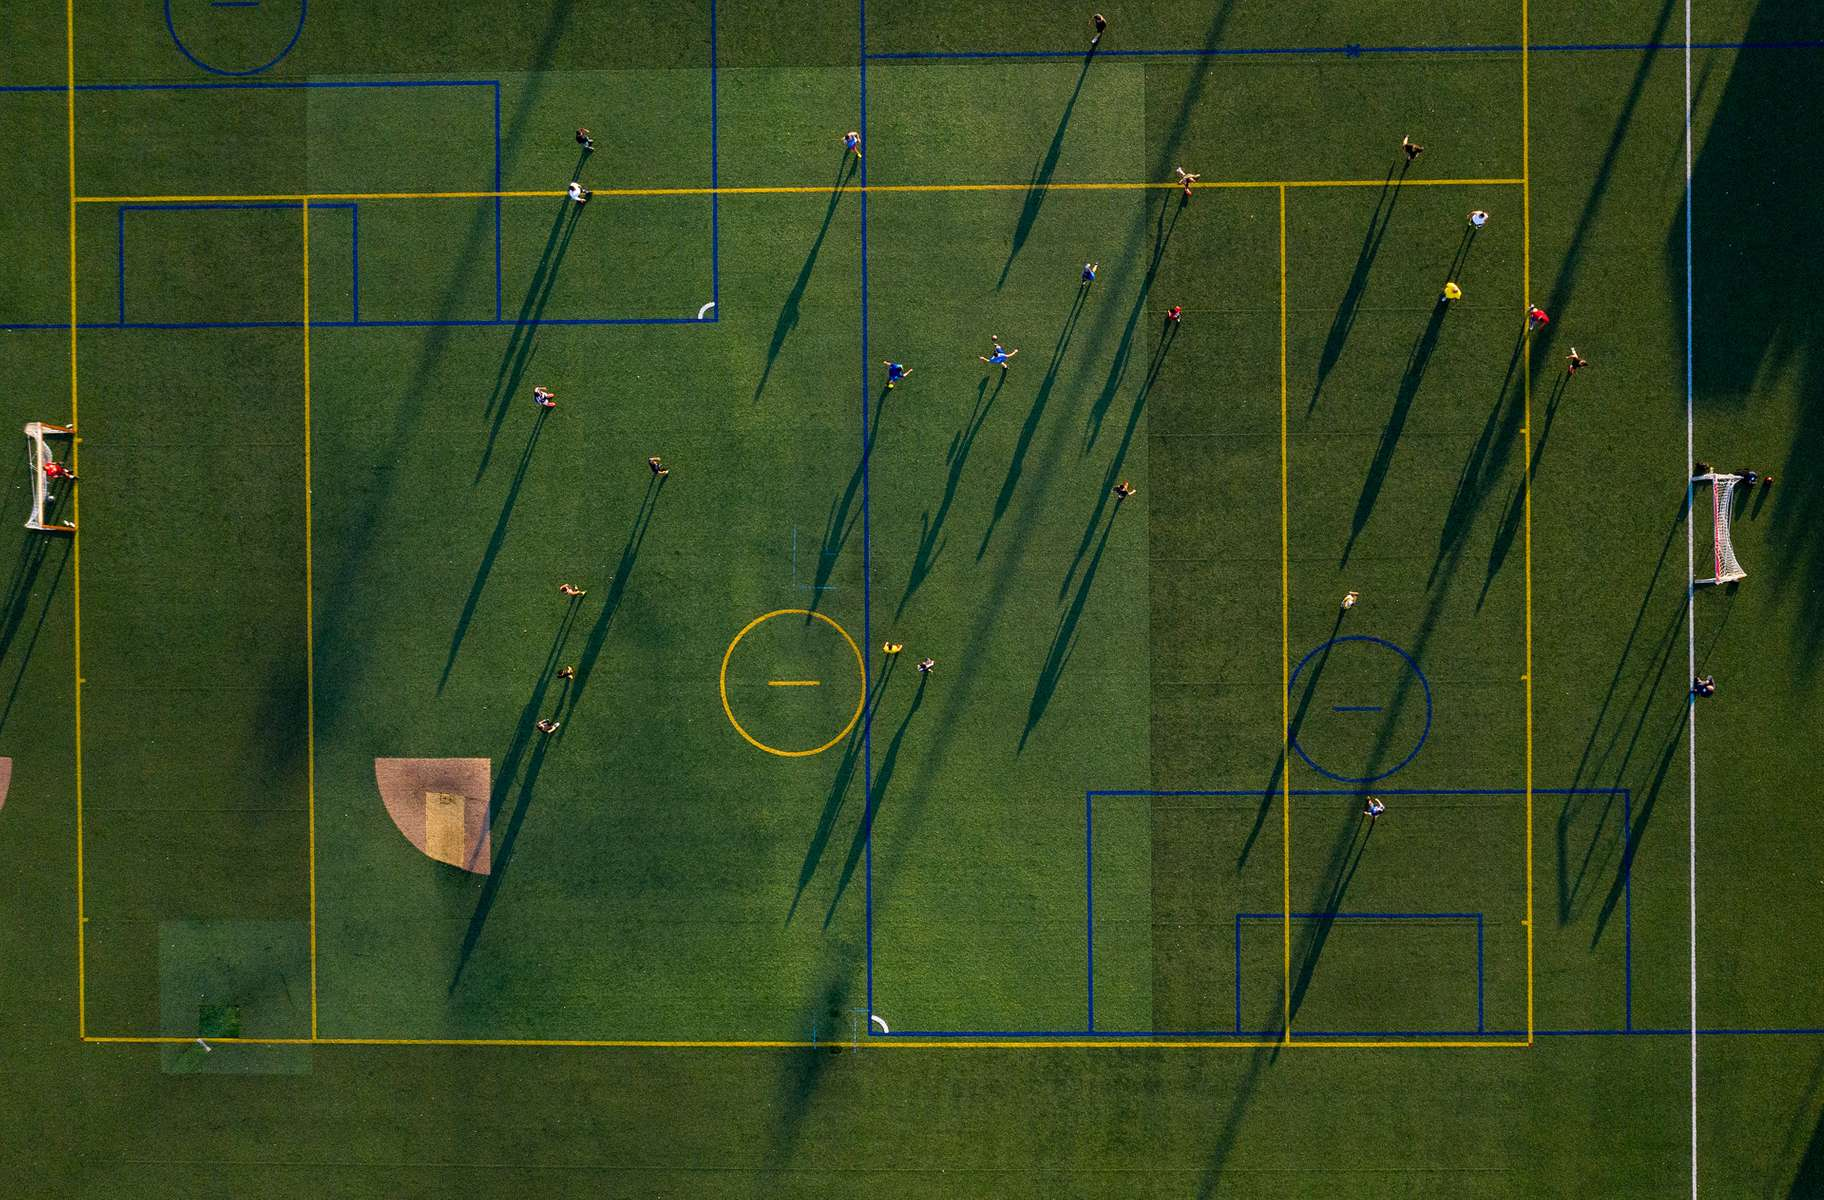 An aerial view of people playing soccer on July 14, 2020 in Long Beach, New York.  Local sports are starting to pick up in New York amidst the coronavirus pandemic.  More than 3,433,100 people in the United States have been infected with the coronavirus and at least 136,100 have died